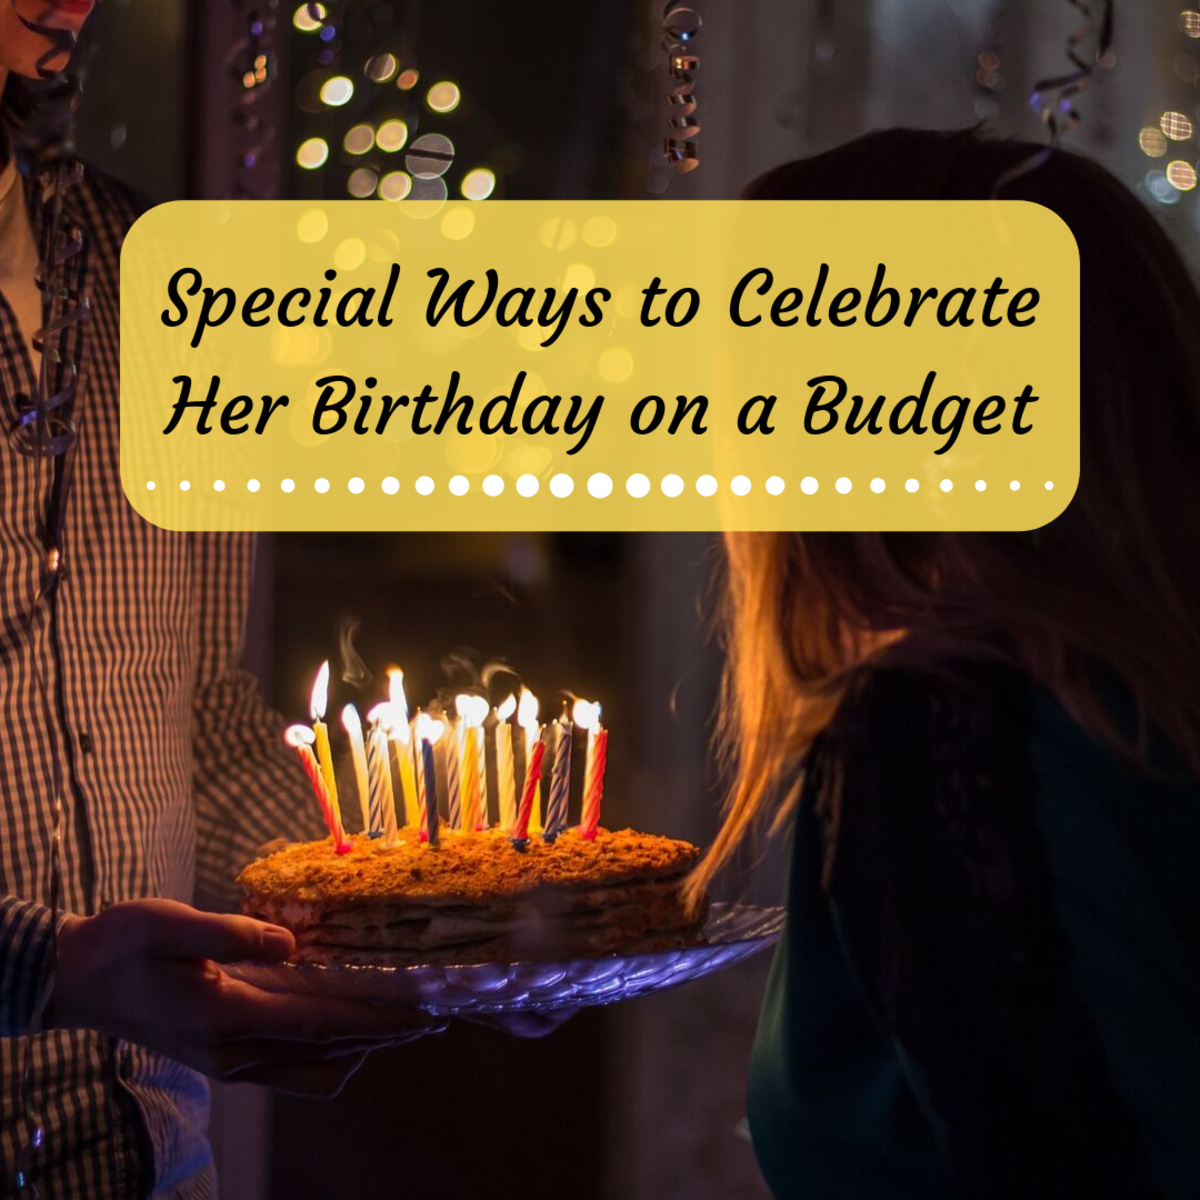 If it's your wife or girlfriend's birthday and you want to have a special celebration without overspending, consider these ideas.